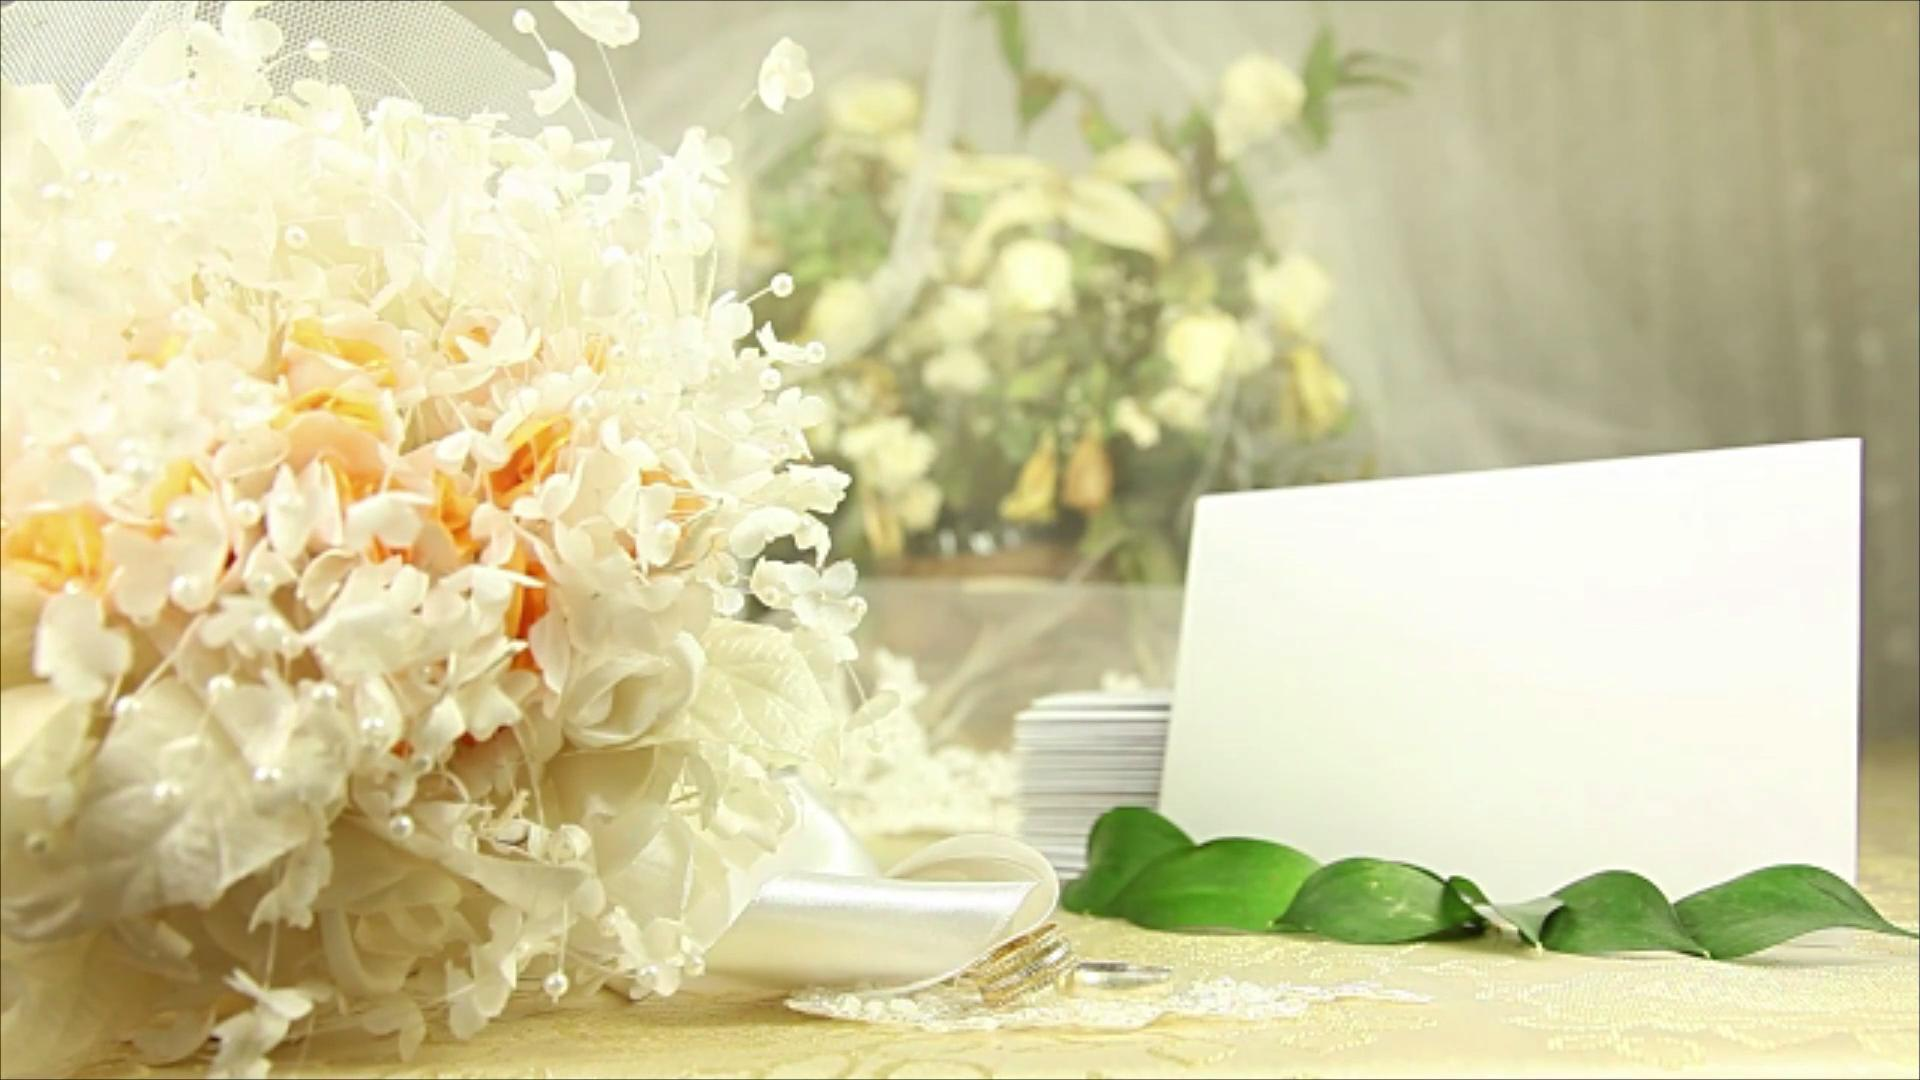 Here are our Tips for Properly Addressing Your Wedding Invites